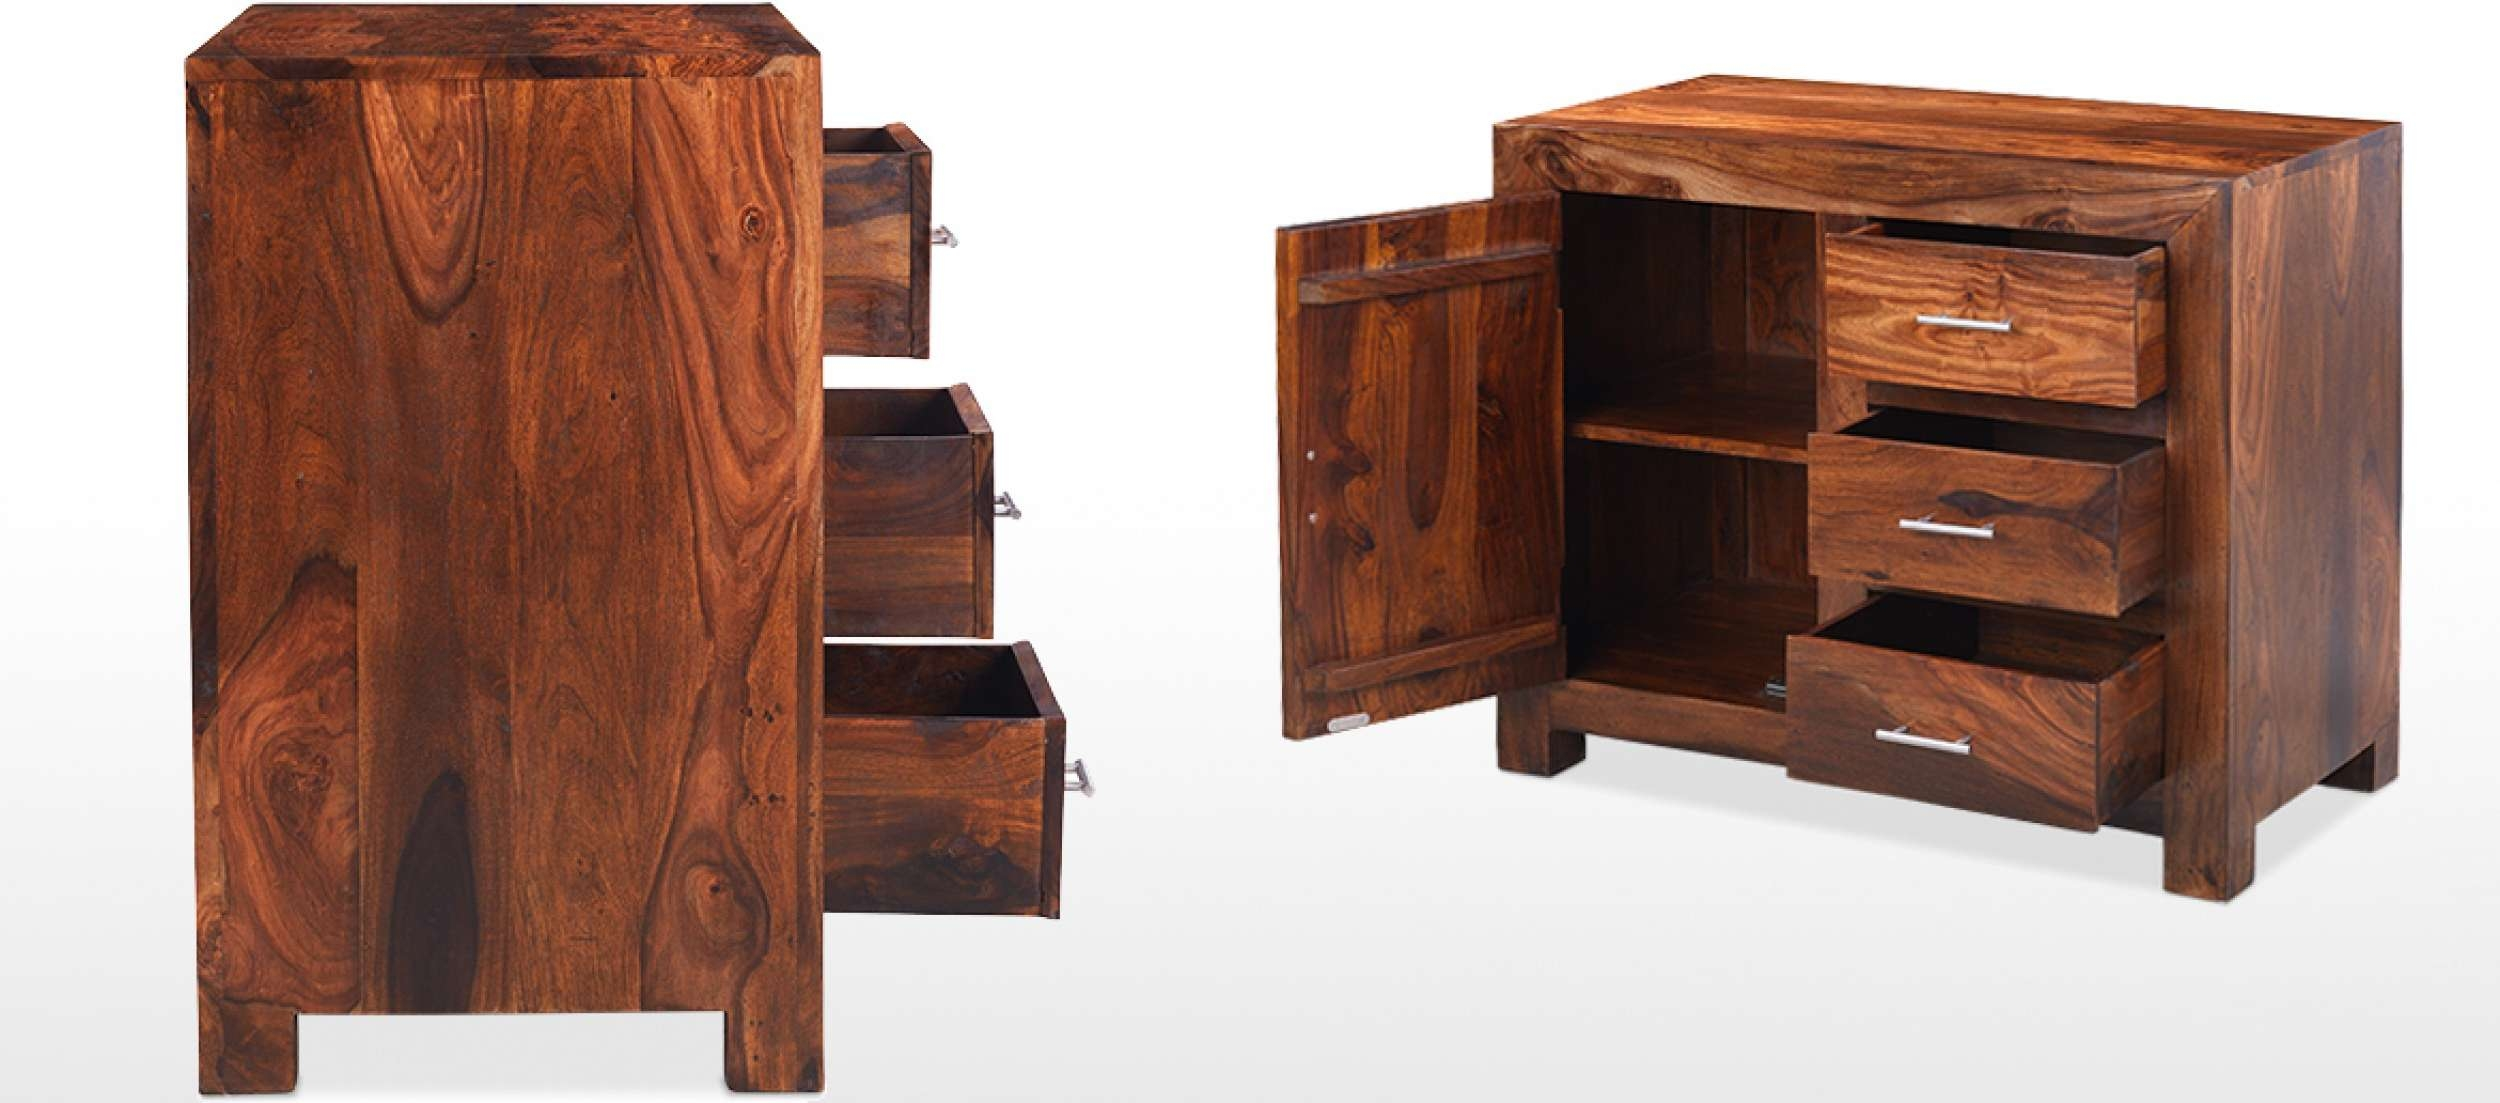 Cube Sheesham Small Sideboard | Quercus Living Throughout Small Dark Wood Sideboards (View 2 of 20)